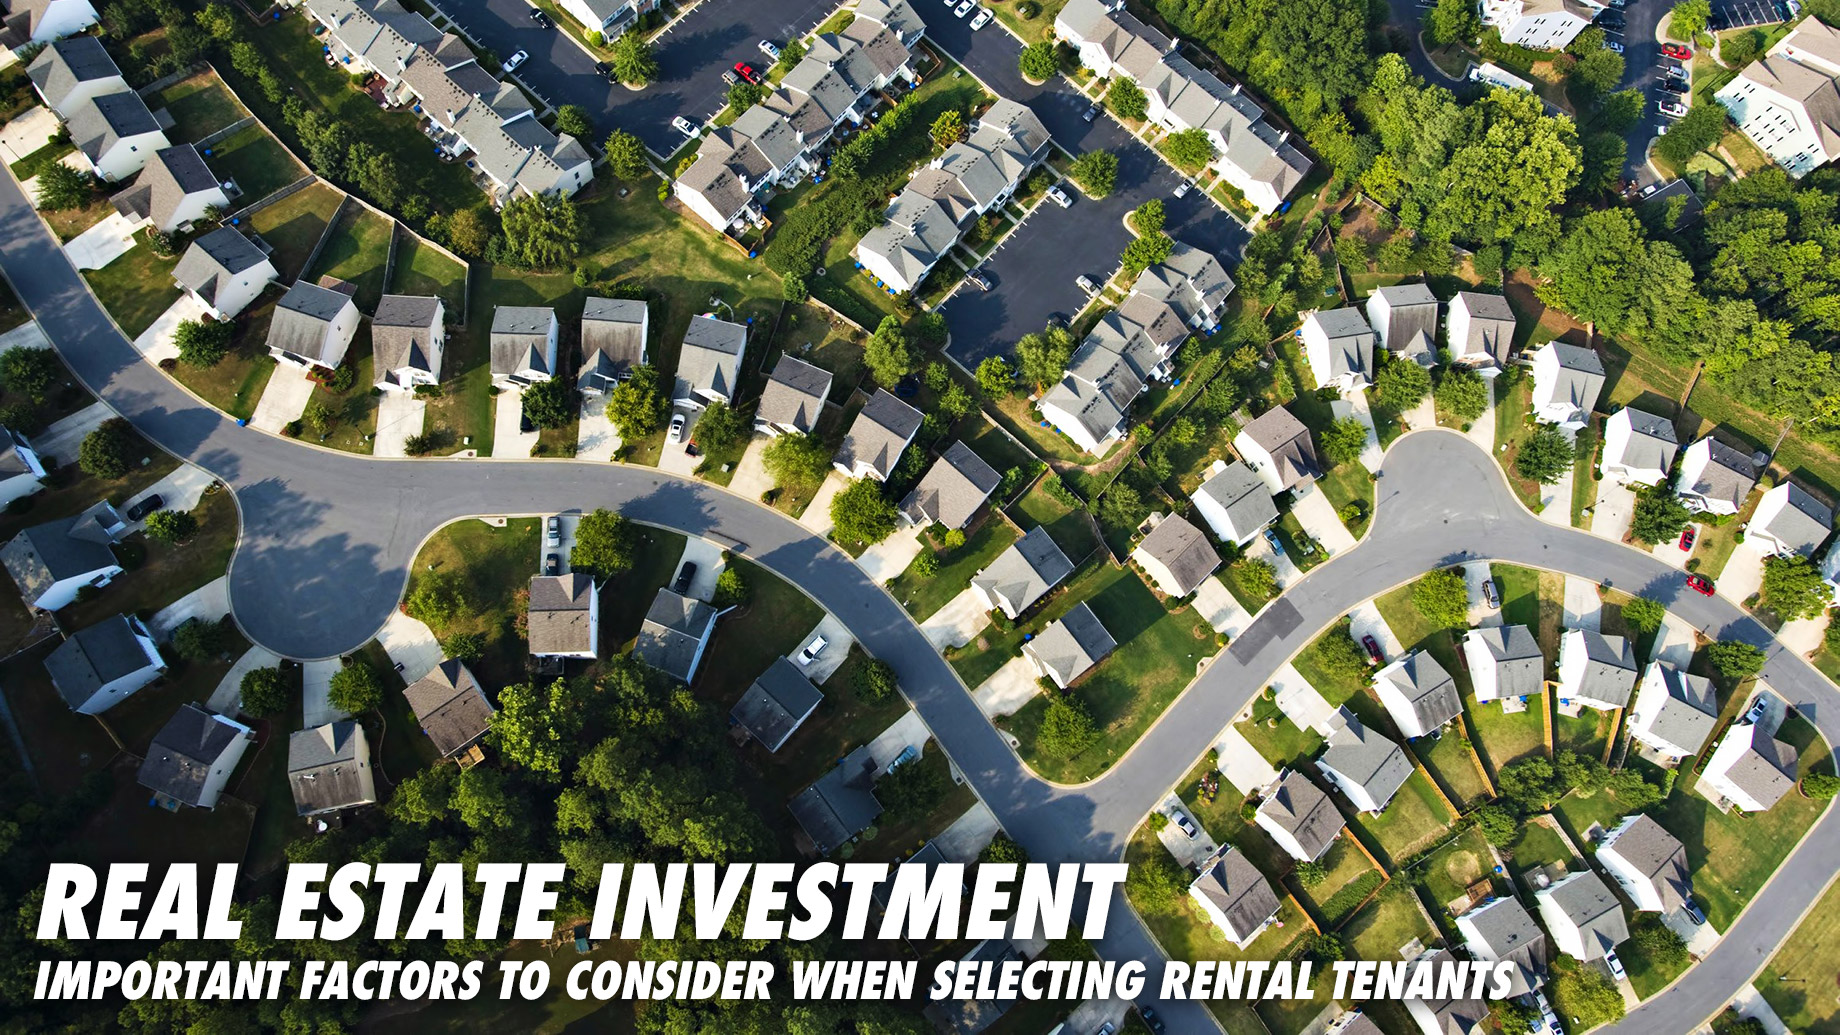 Real Estate Investment - Important Factors to Consider When Selecting Rental Tenants